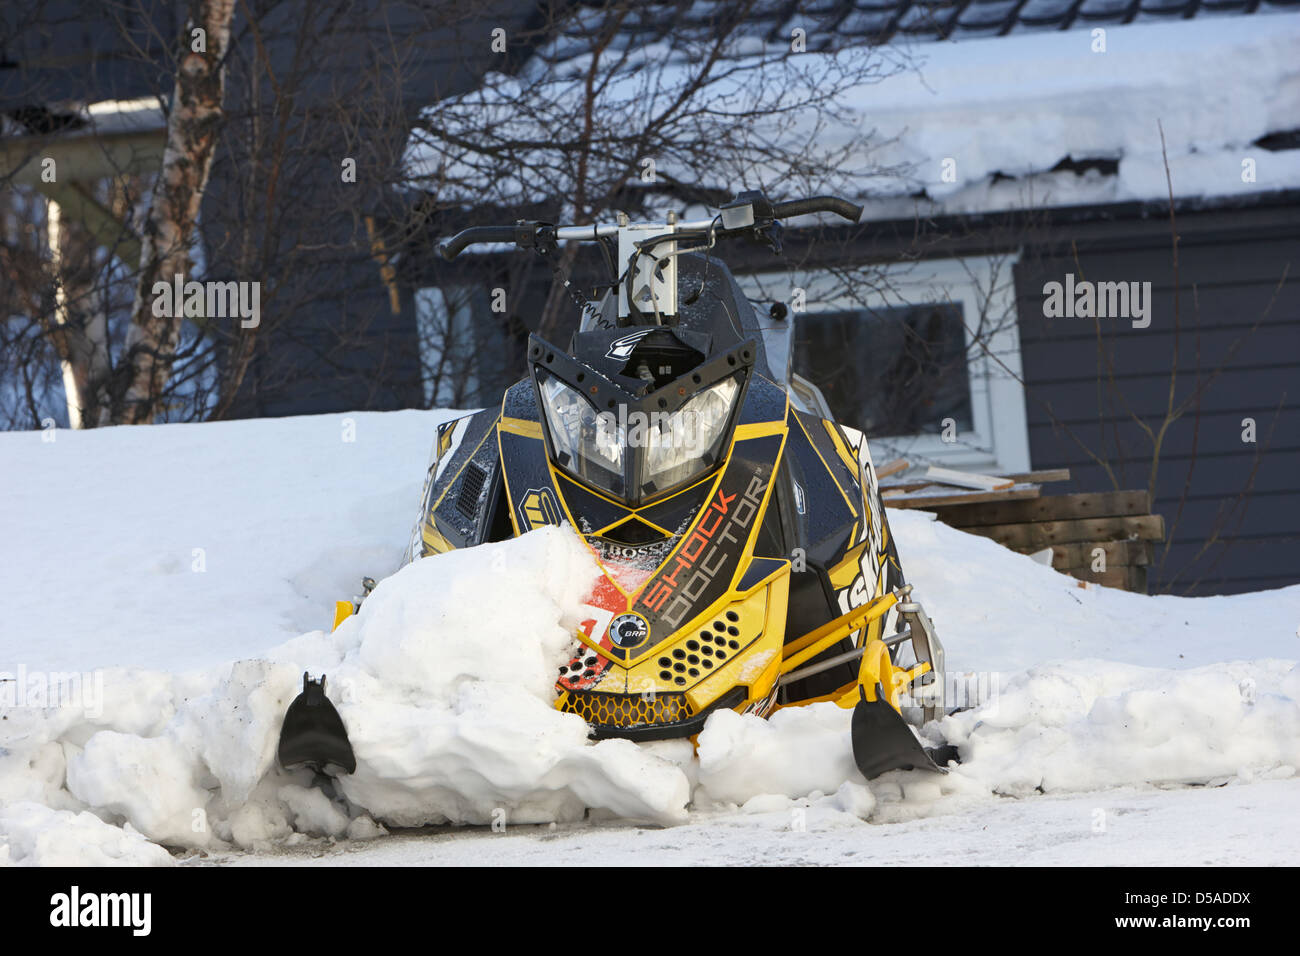 crashed damaged snowmobile kirkenes finnmark norway europe - Stock Image